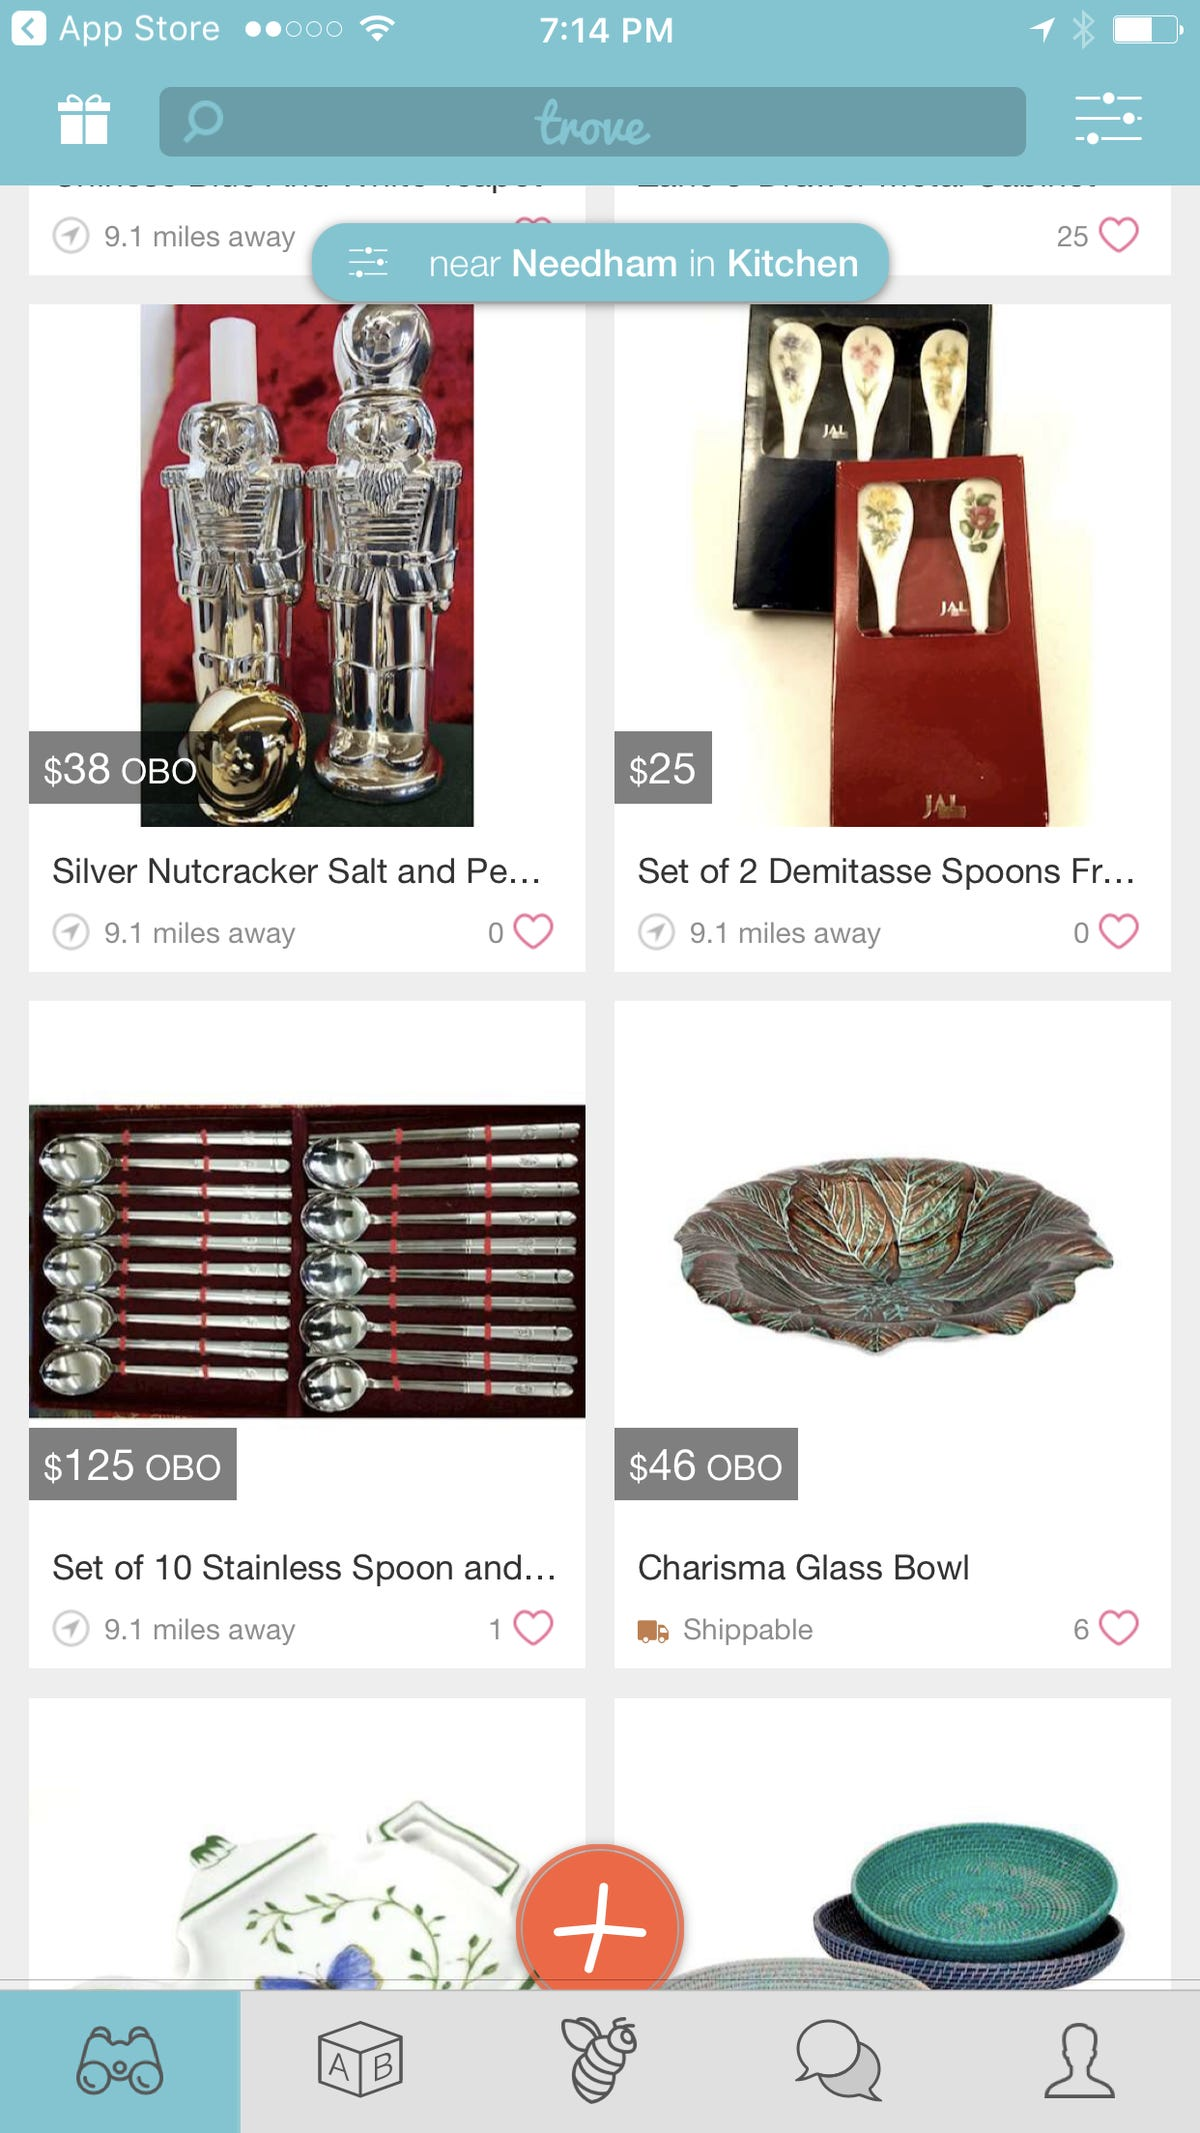 How To Sell Stuff - Selling Apps For Clothes, Furniture